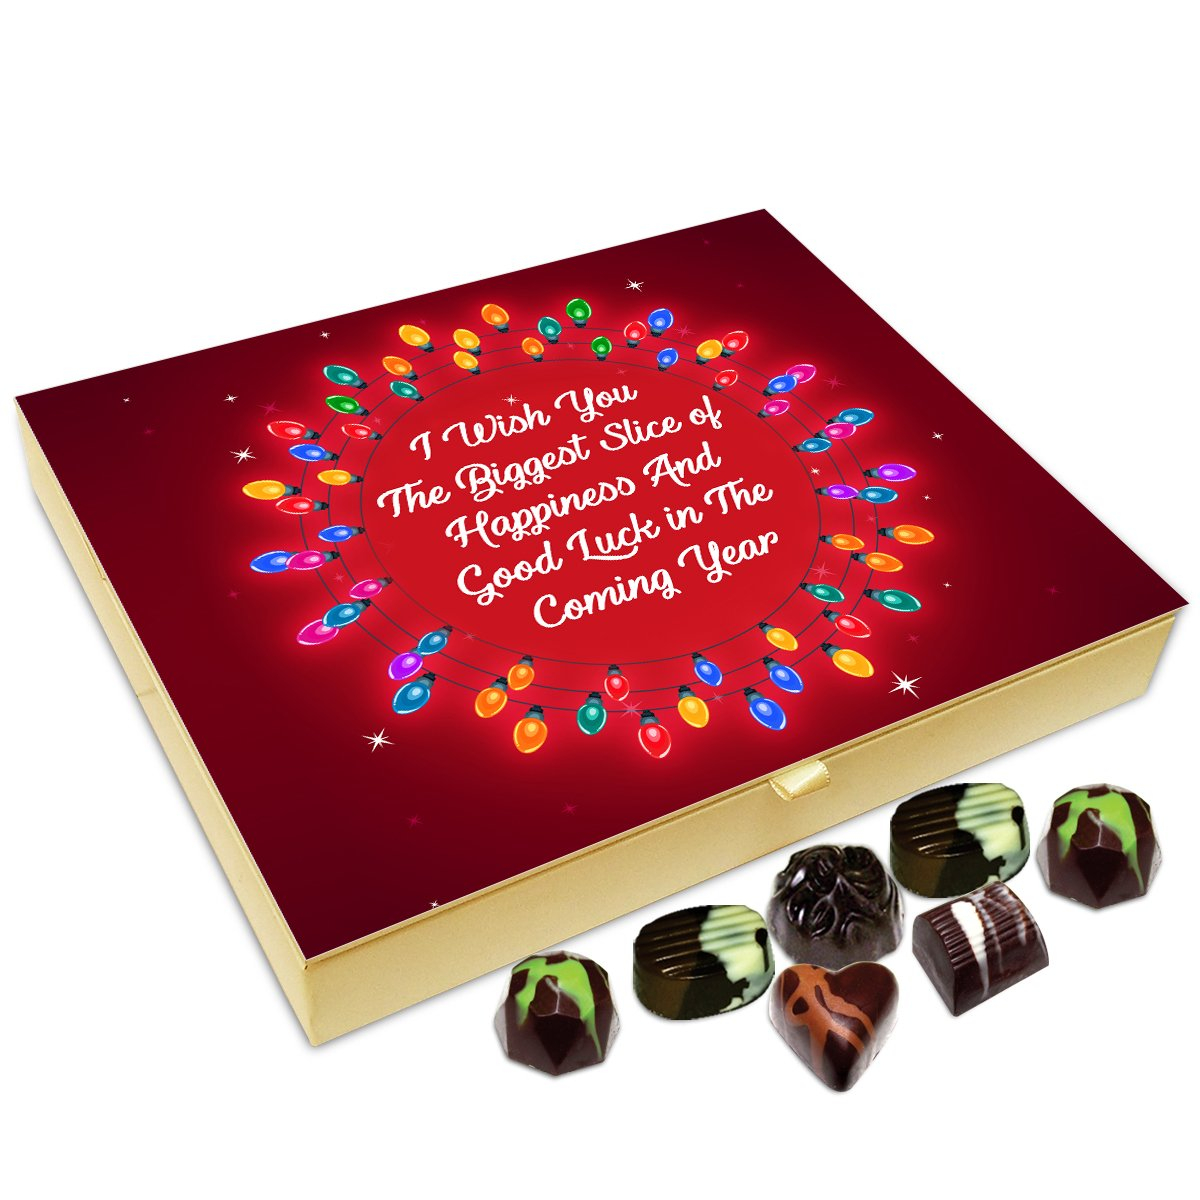 Chocholik New Year Chocolate Box – I Wish You Biggest Slice of Happiness On New Year Chocolate Box – 20pc